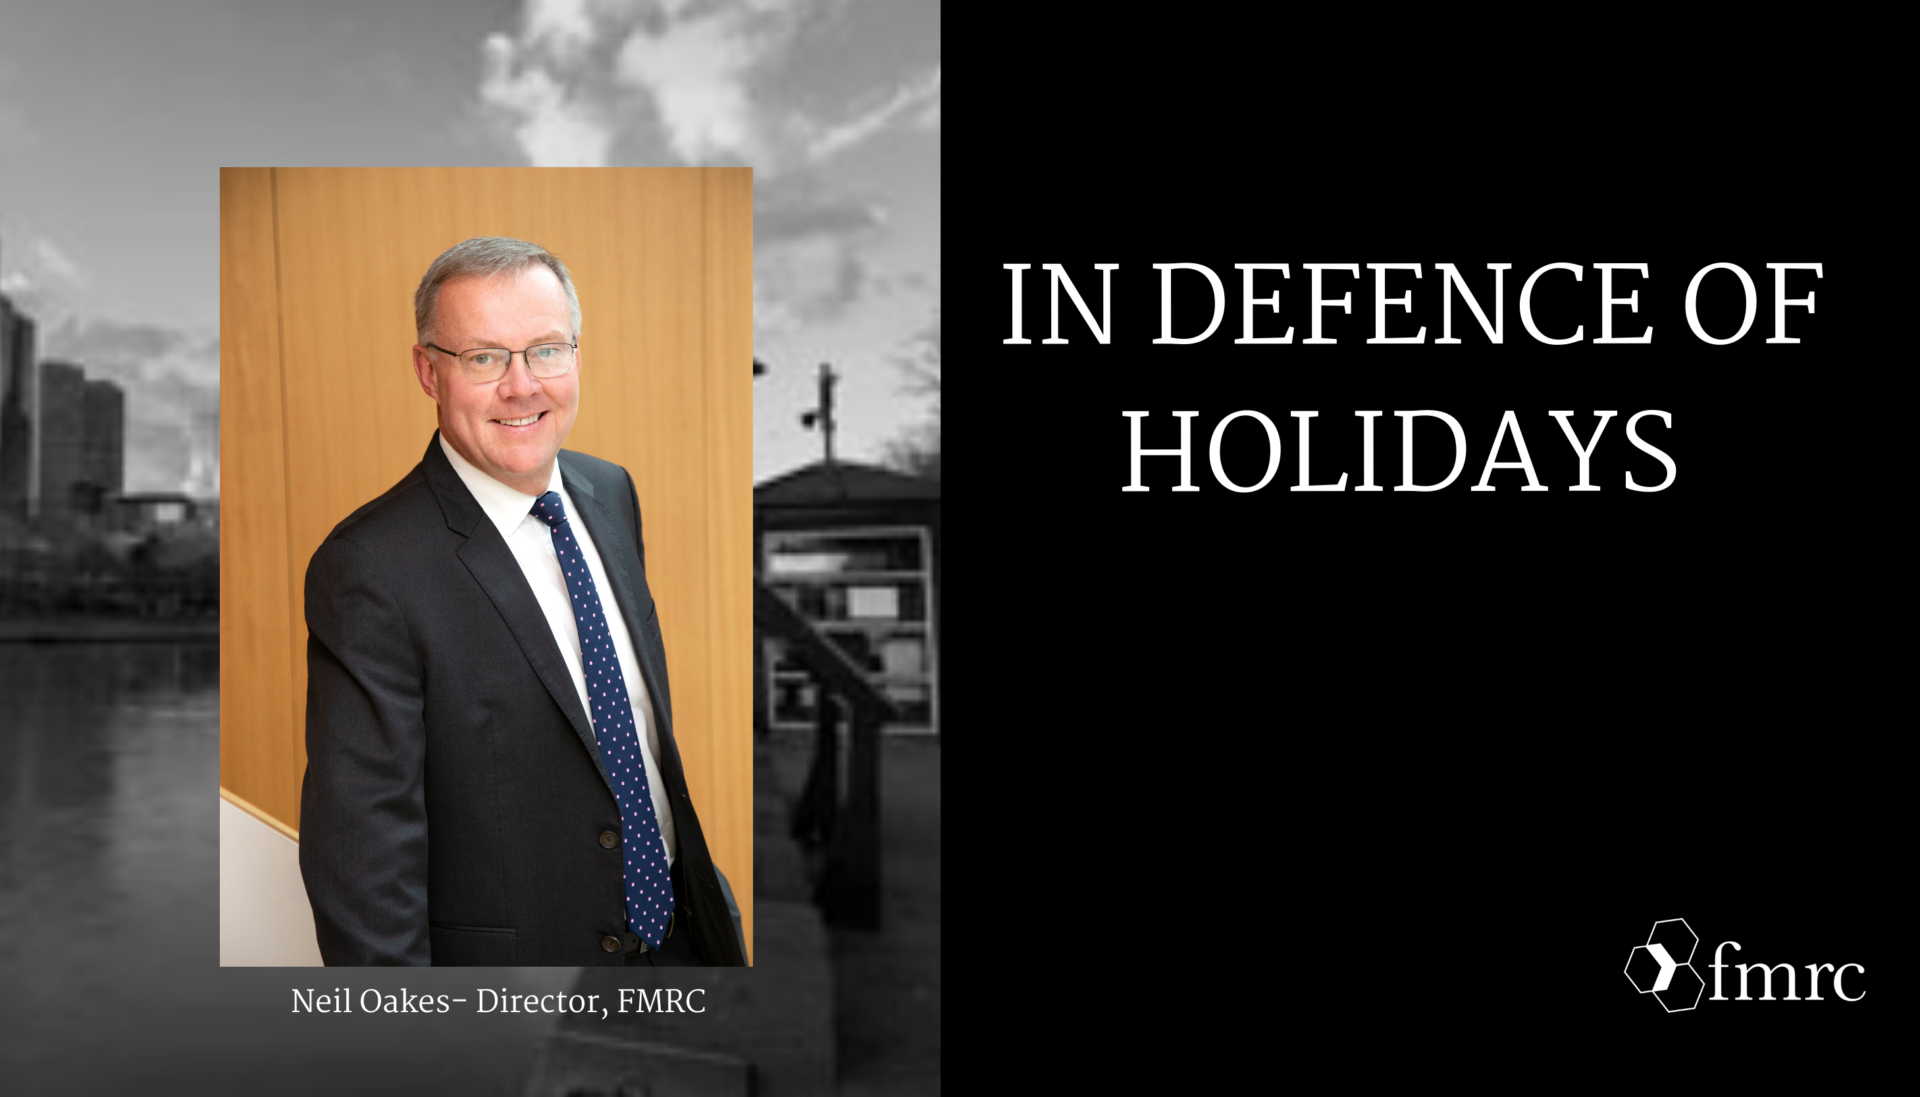 In Defence of Holidays